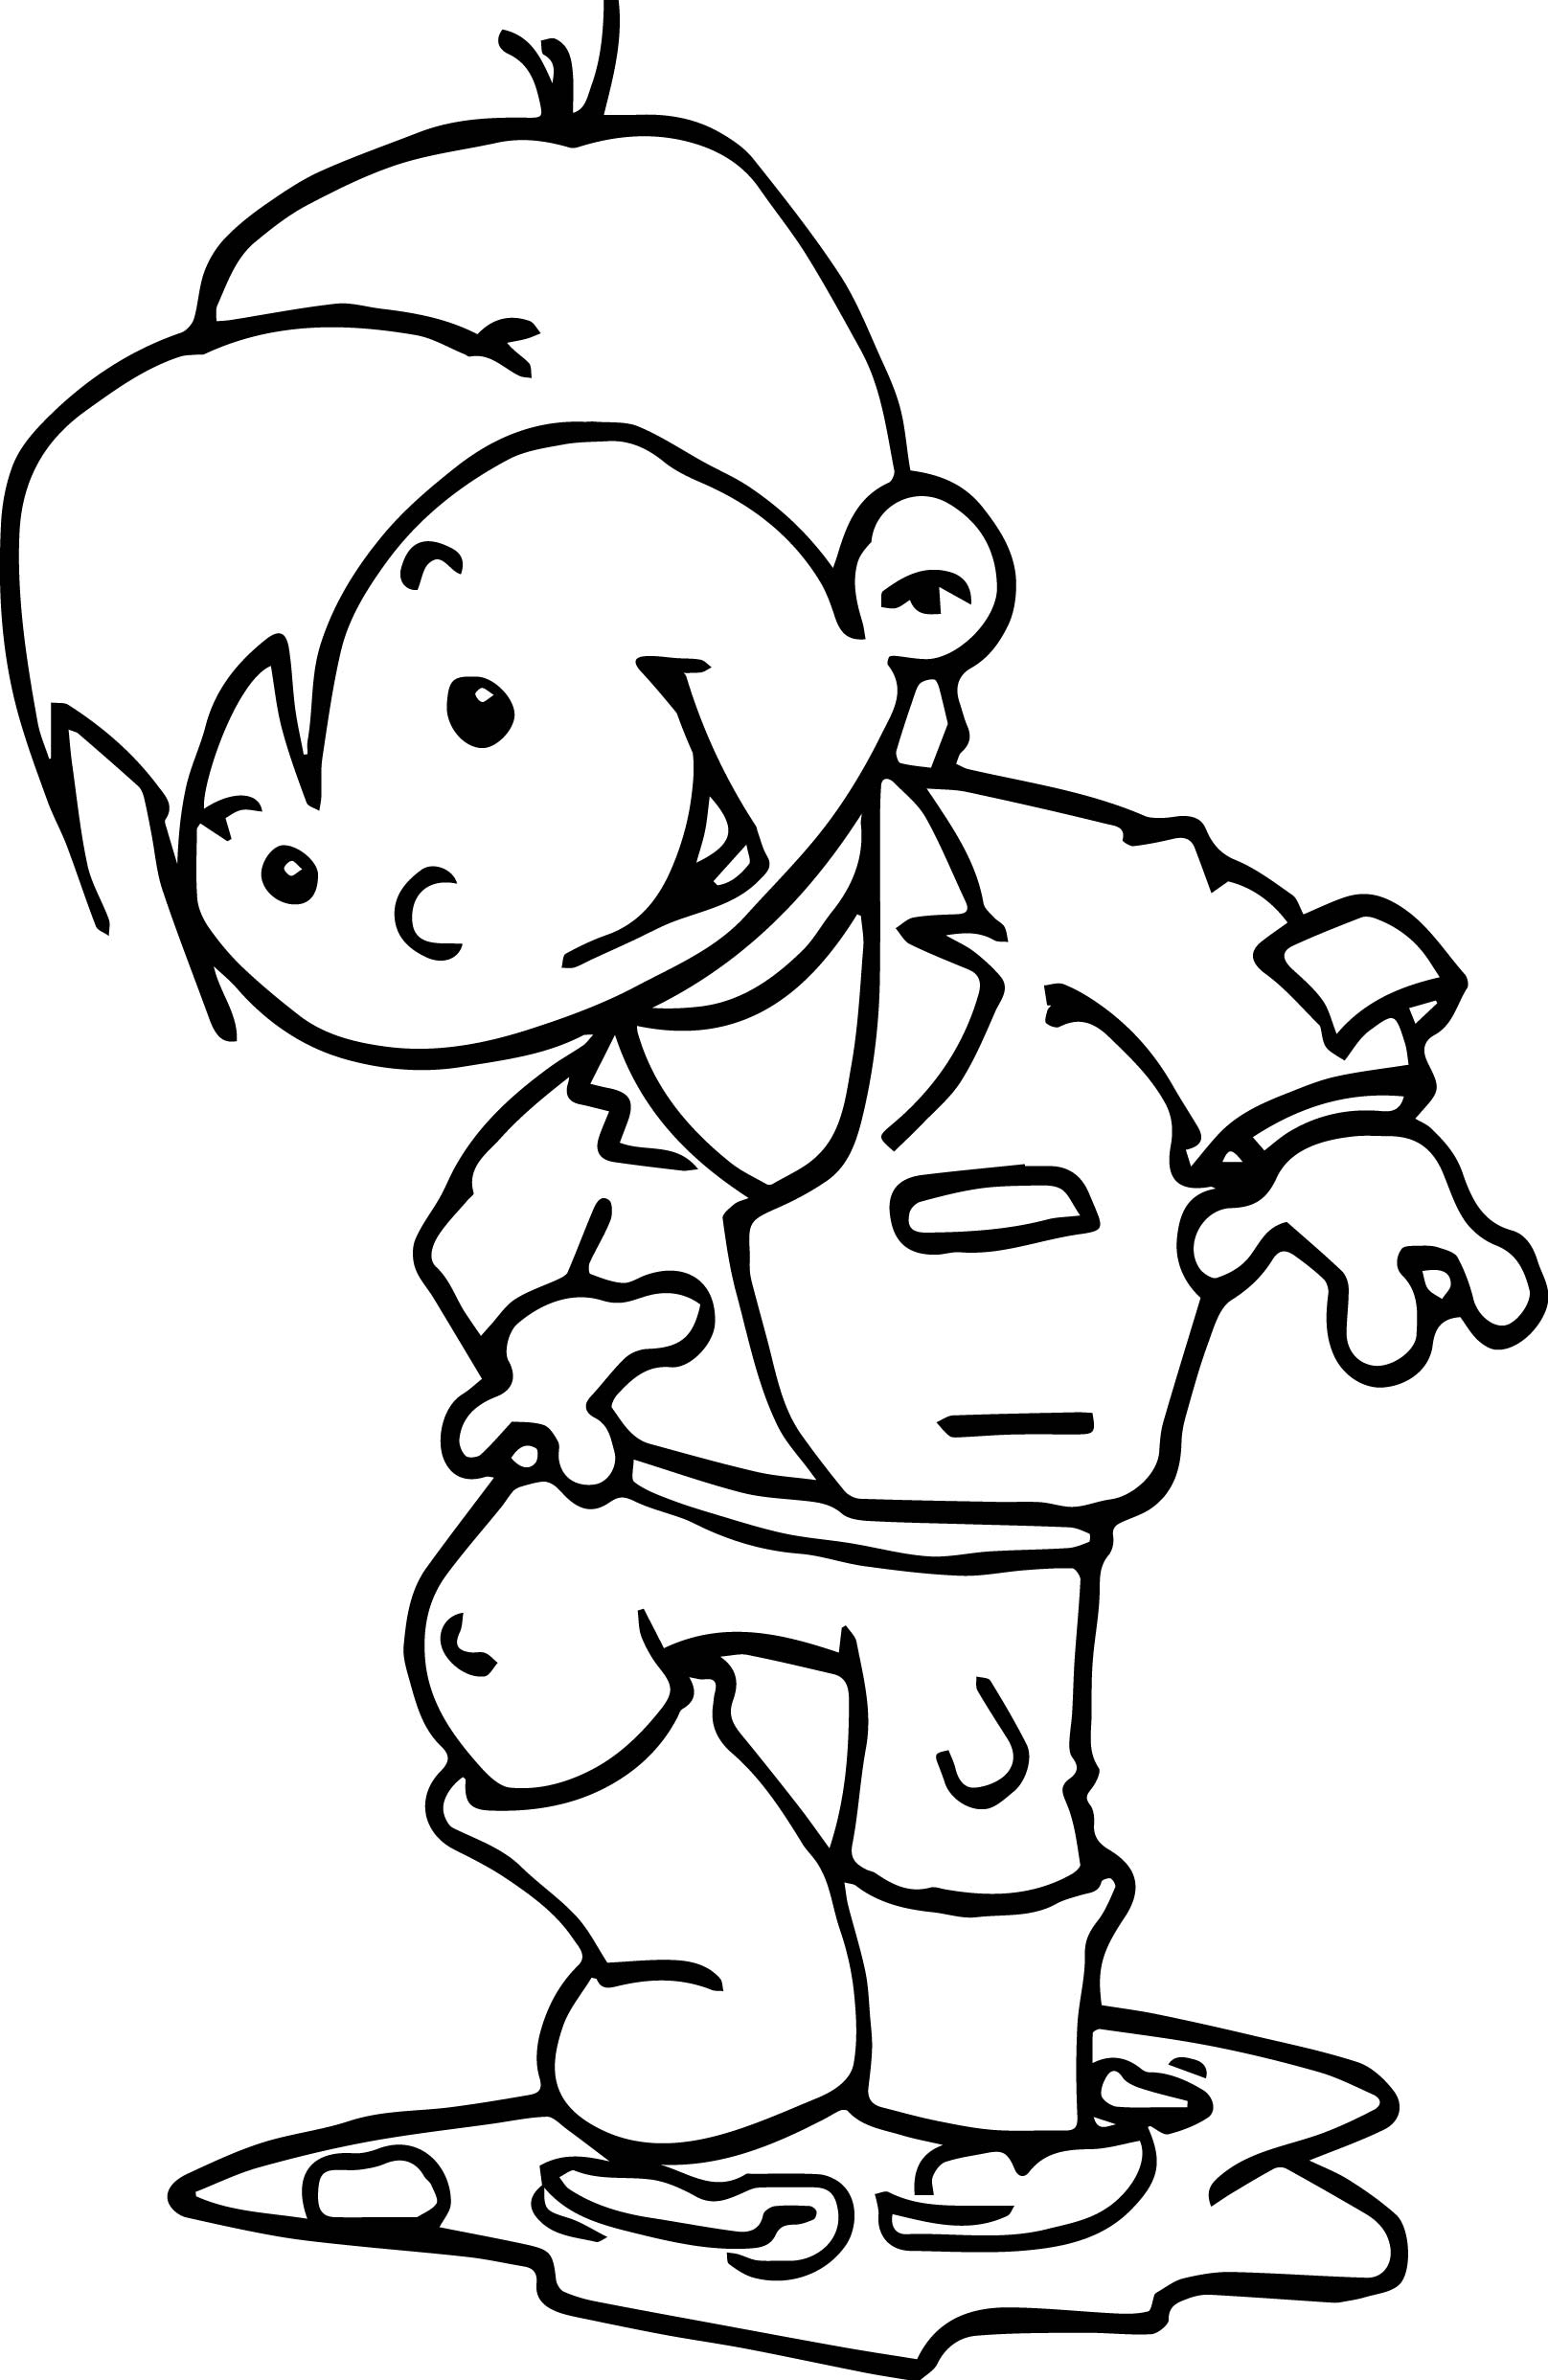 Autumn Image Free Kindergarten Coloring Page